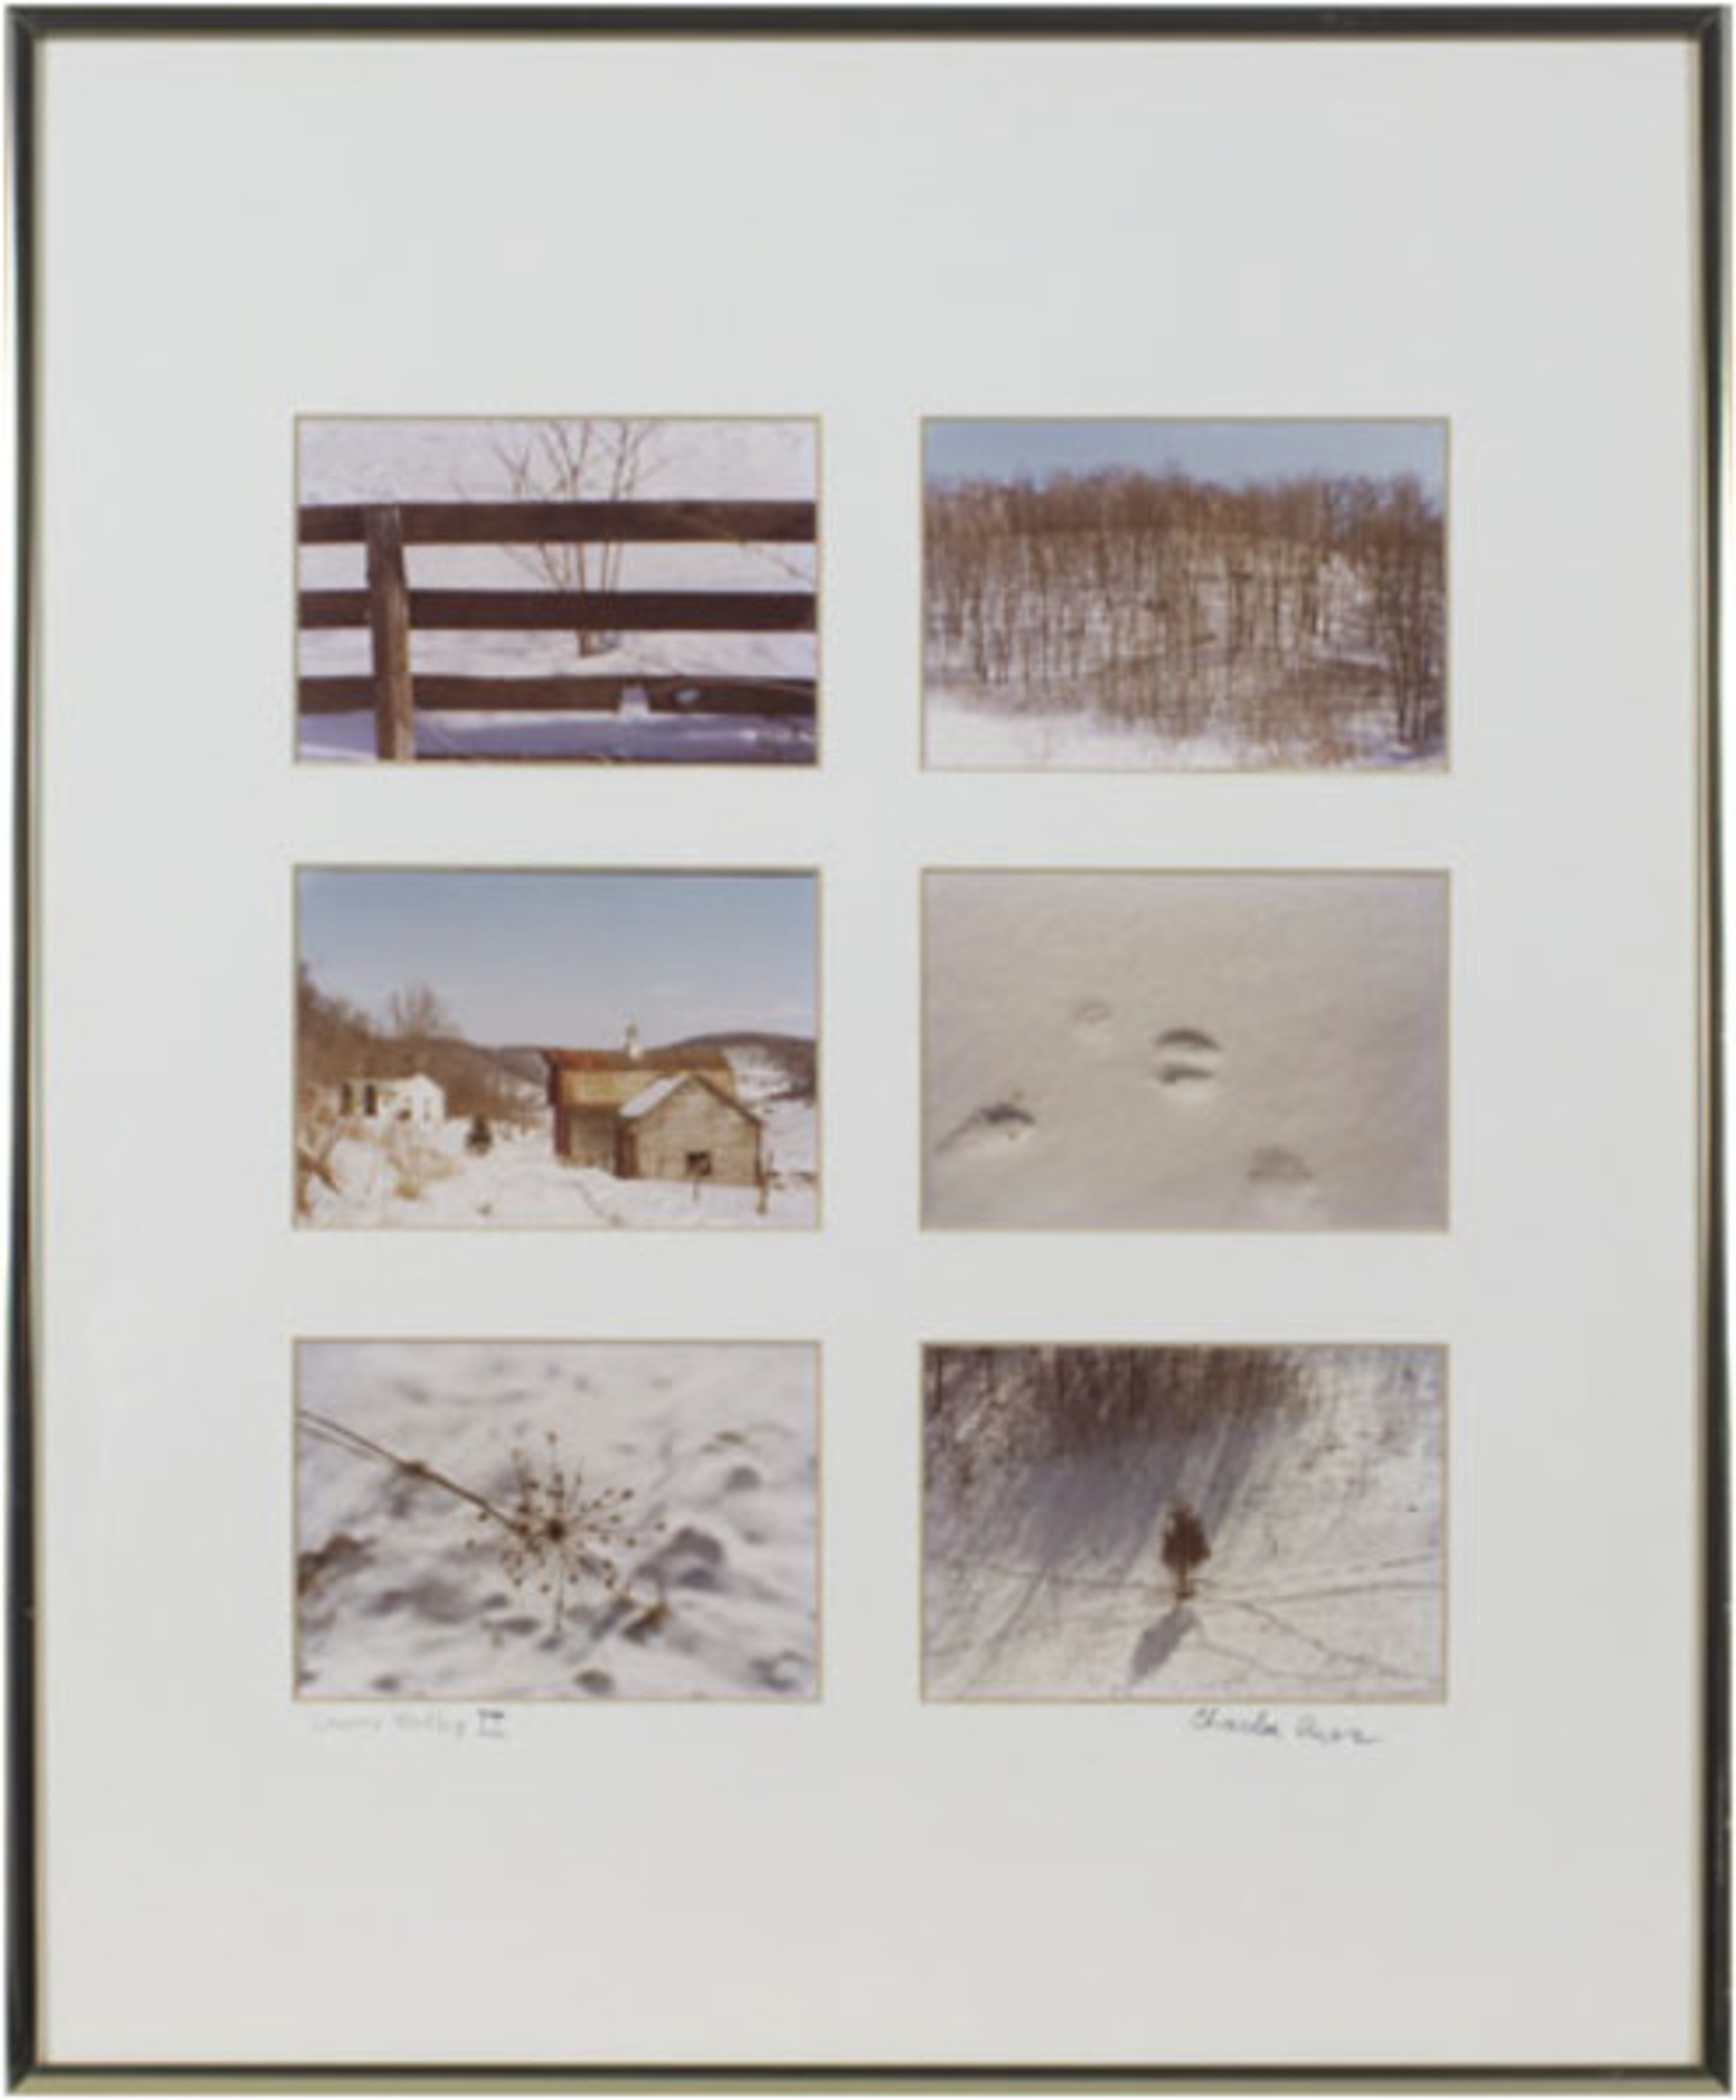 Country Medley II, signed (Series of 6) by Charles Auer